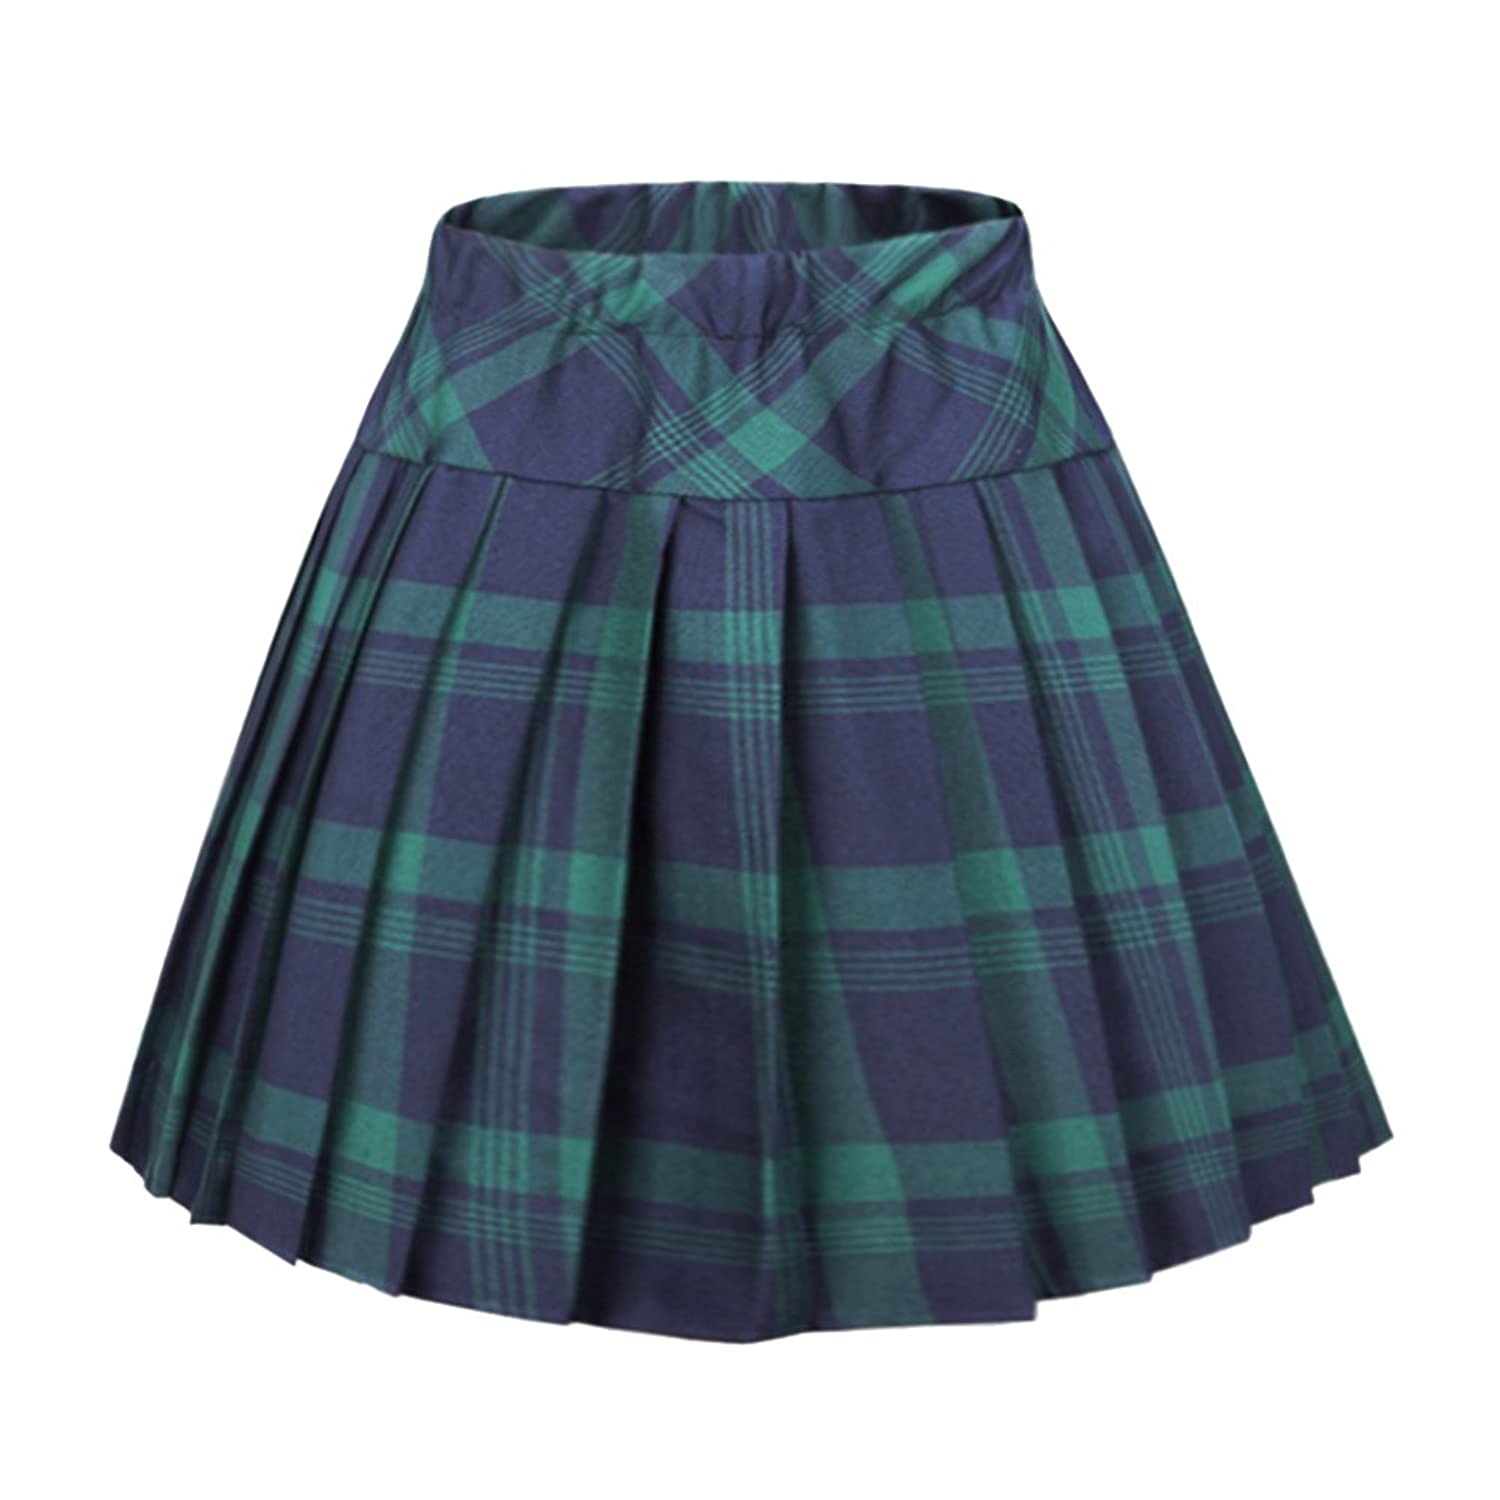 1960s Style Skirts Urban CoCo Womens Elastic Waist Tartan Pleated School Skirt $14.86 AT vintagedancer.com